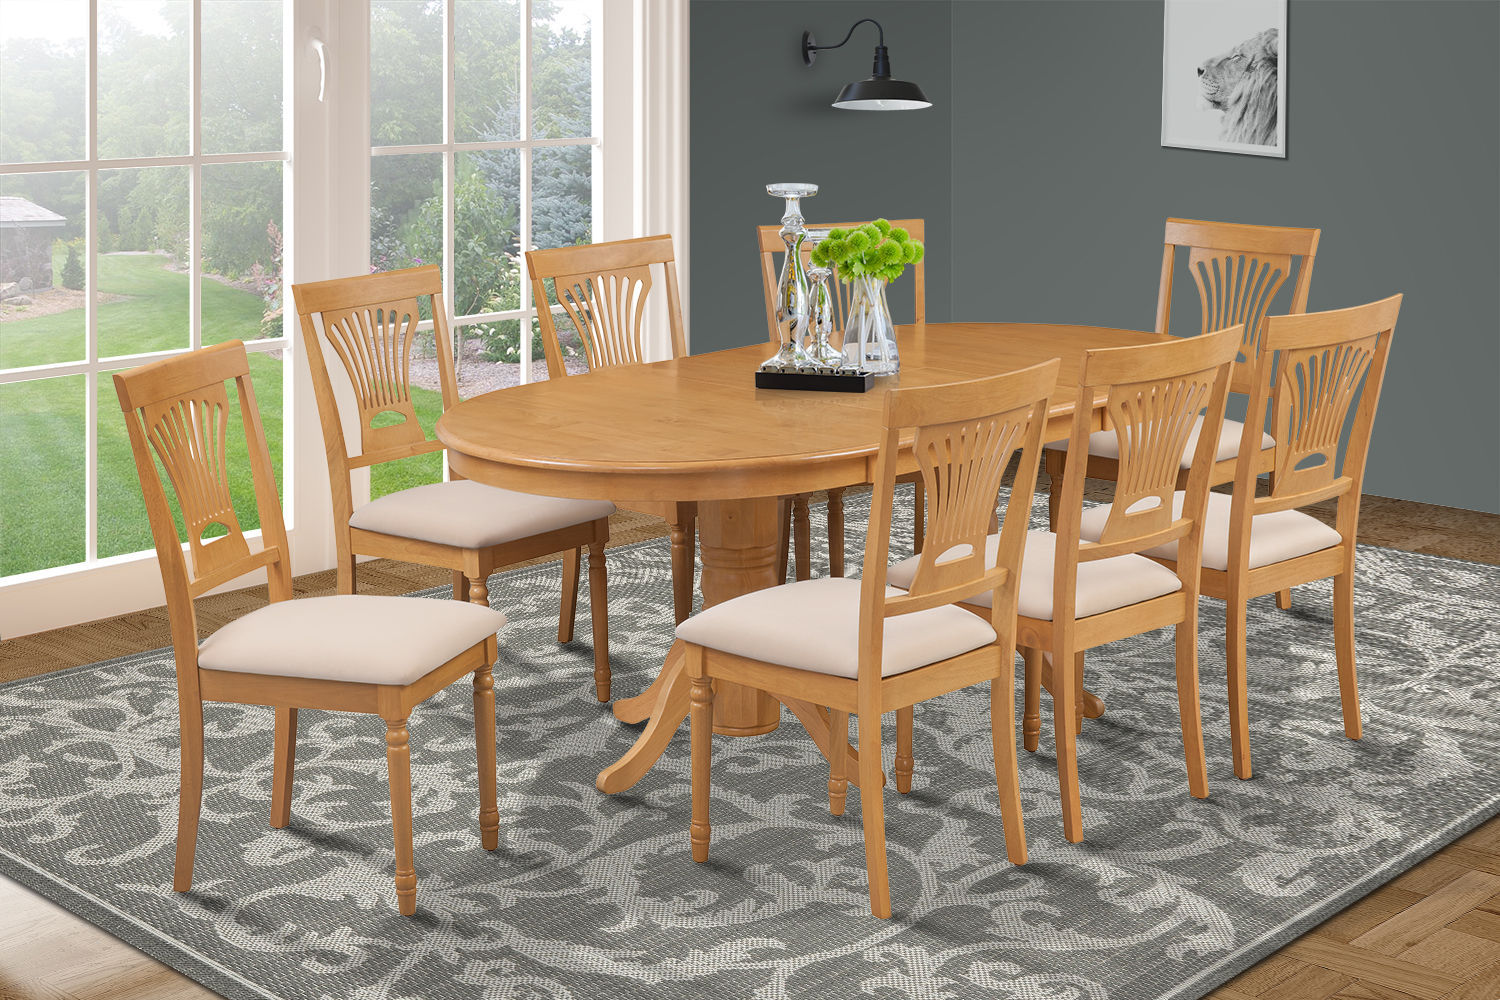 9 PIECE OVAL DINING ROOM TABLE SET w/ 8 SOFT-PADDED CHAIRS IN OAK FINISH